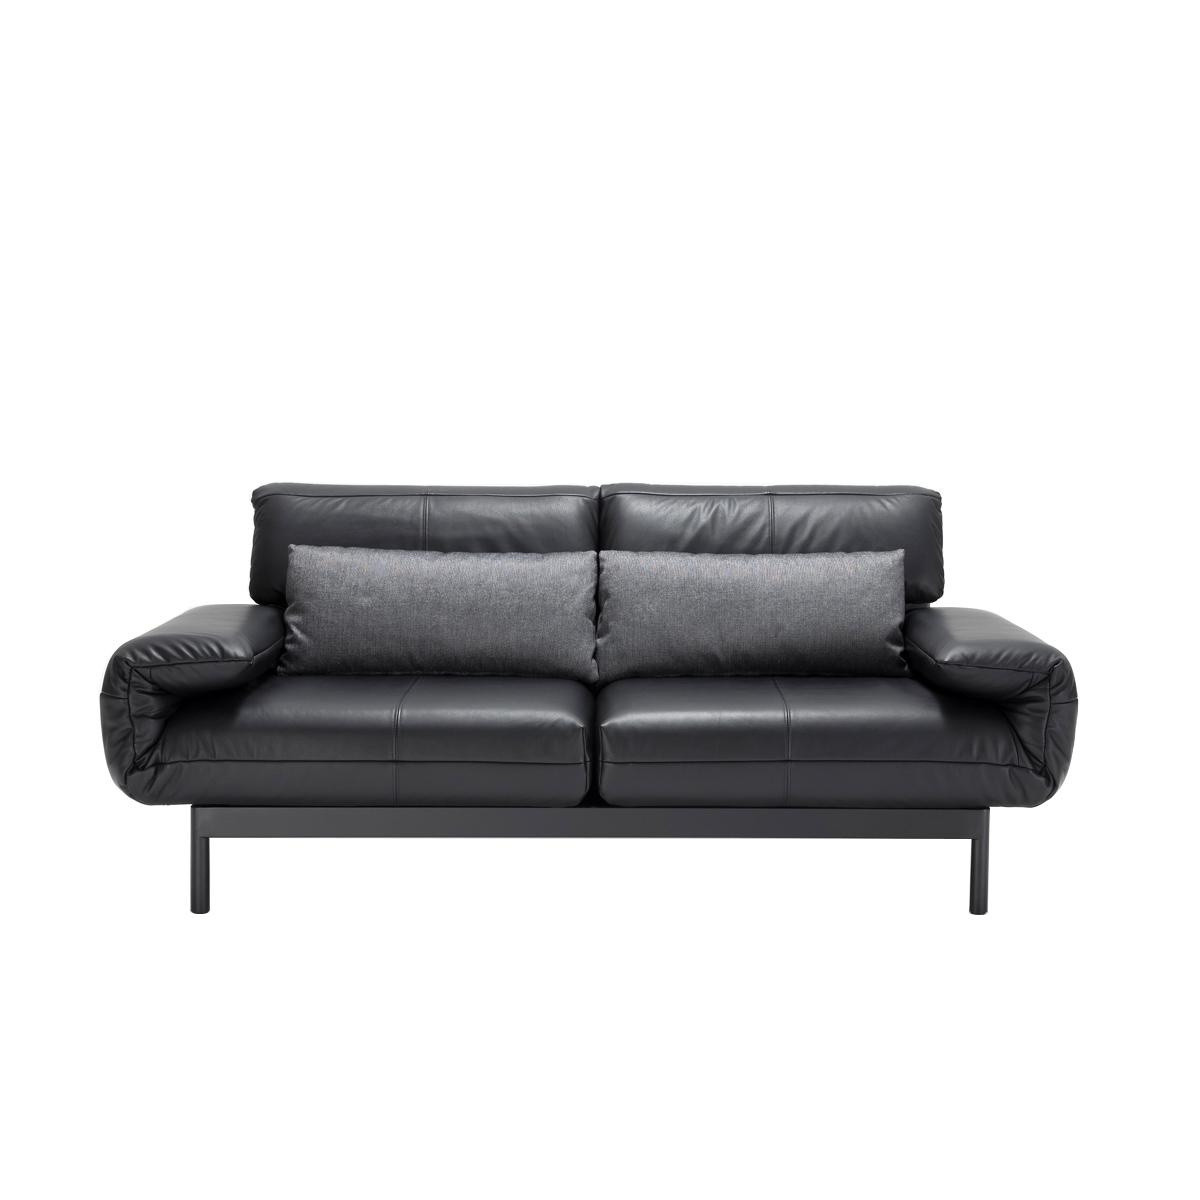 rolf benz plura sofa rolf benz plura funktionalit t trifft design bei m bel h ffner plura rolf. Black Bedroom Furniture Sets. Home Design Ideas